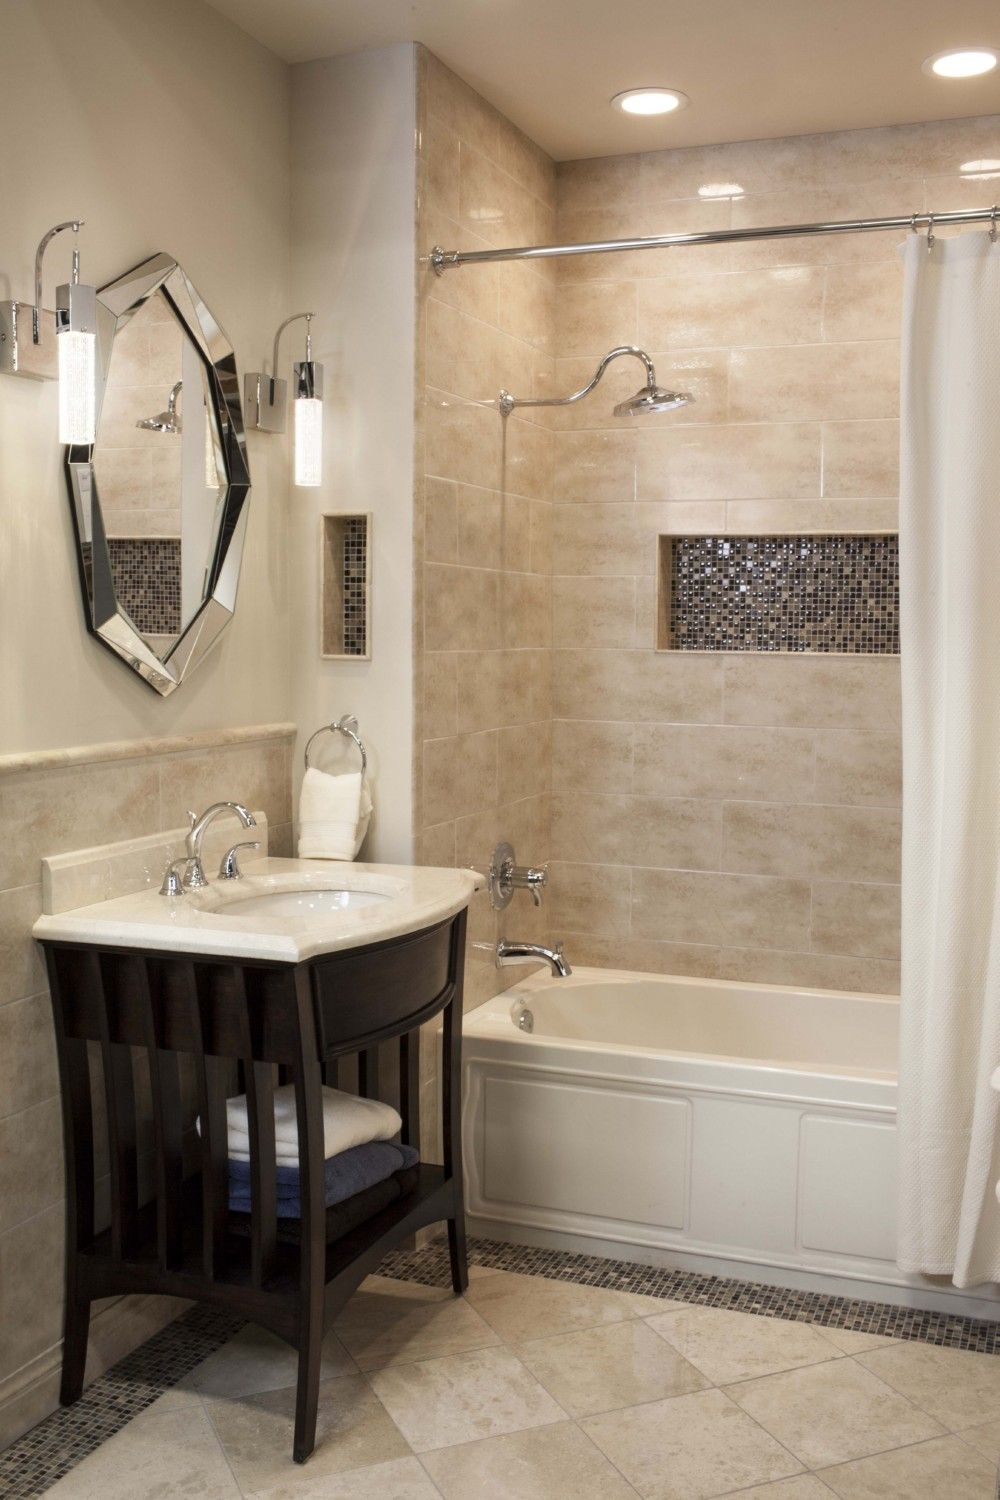 Small Comfort Room Tiles Design: Cozy Small Bathroom Shower With Tub Tile Design Ideas